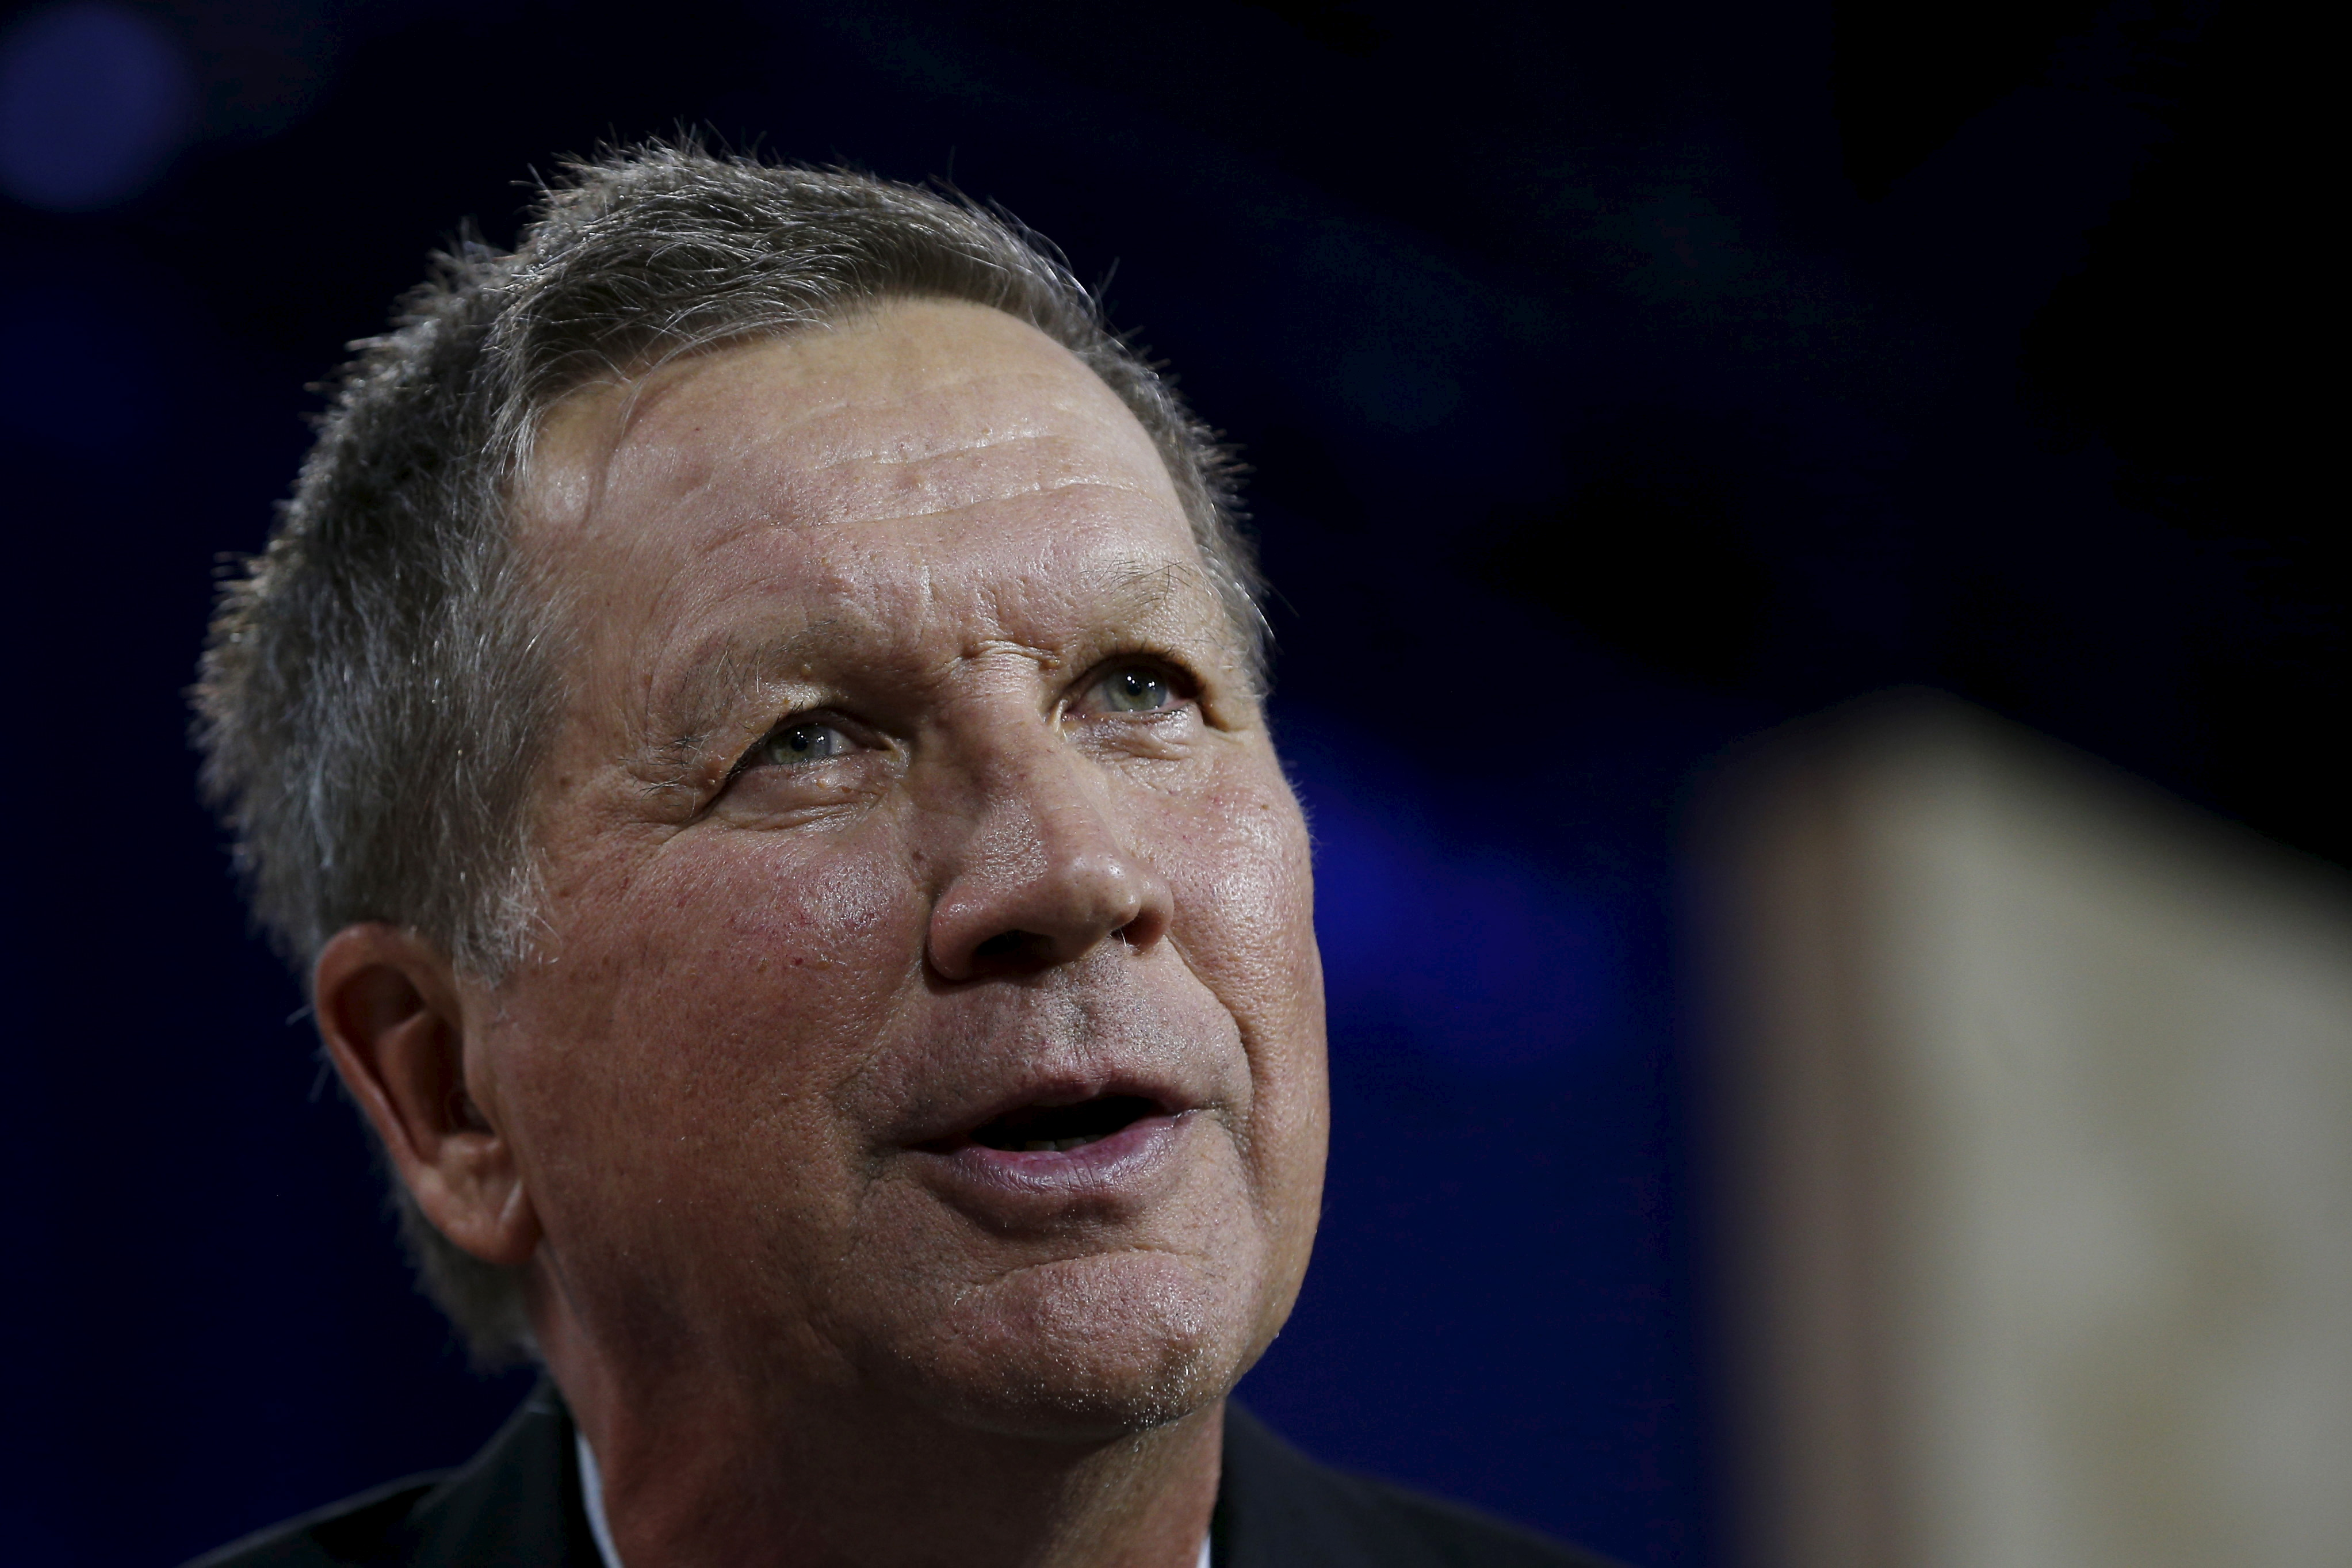 U.S. Republican presidential candidate and Ohio Governor John Kasich speaks at the New Hampshire Education Summit in Londonderry, New Hampshire Aug. 19, 2015